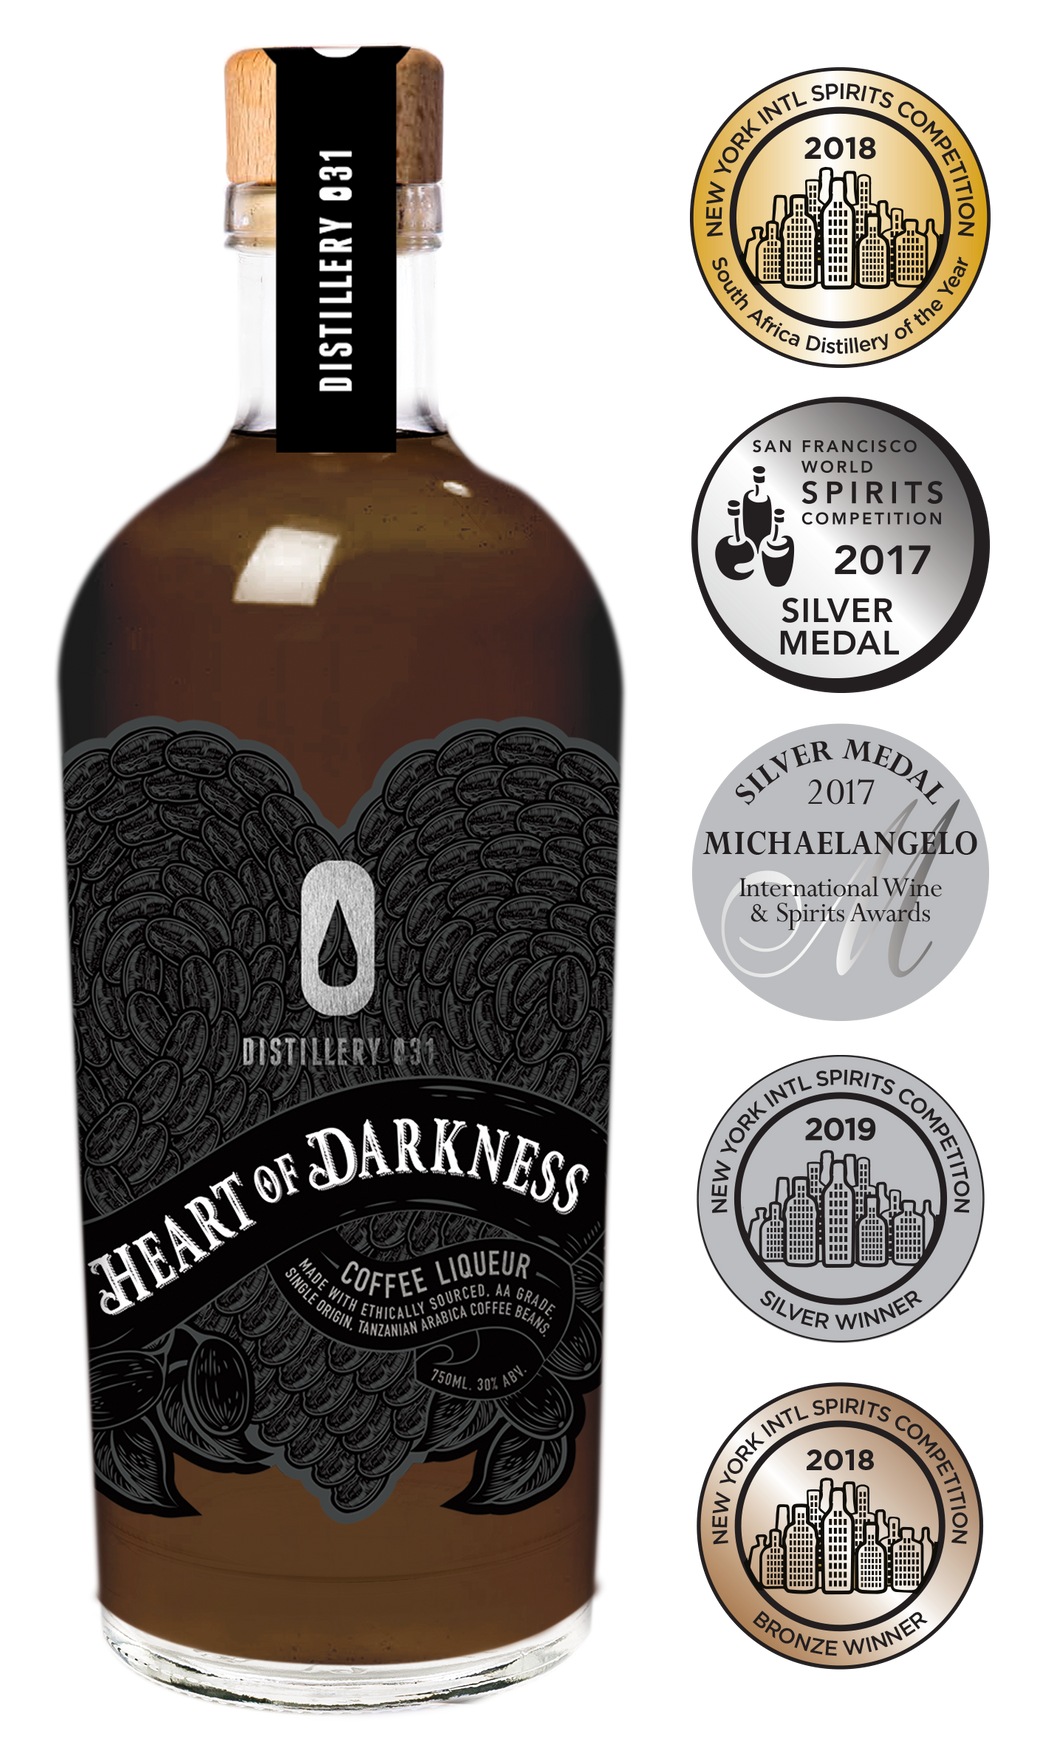 Heart of Darkness Coffee Liqueur 750ml (Distillery 031)